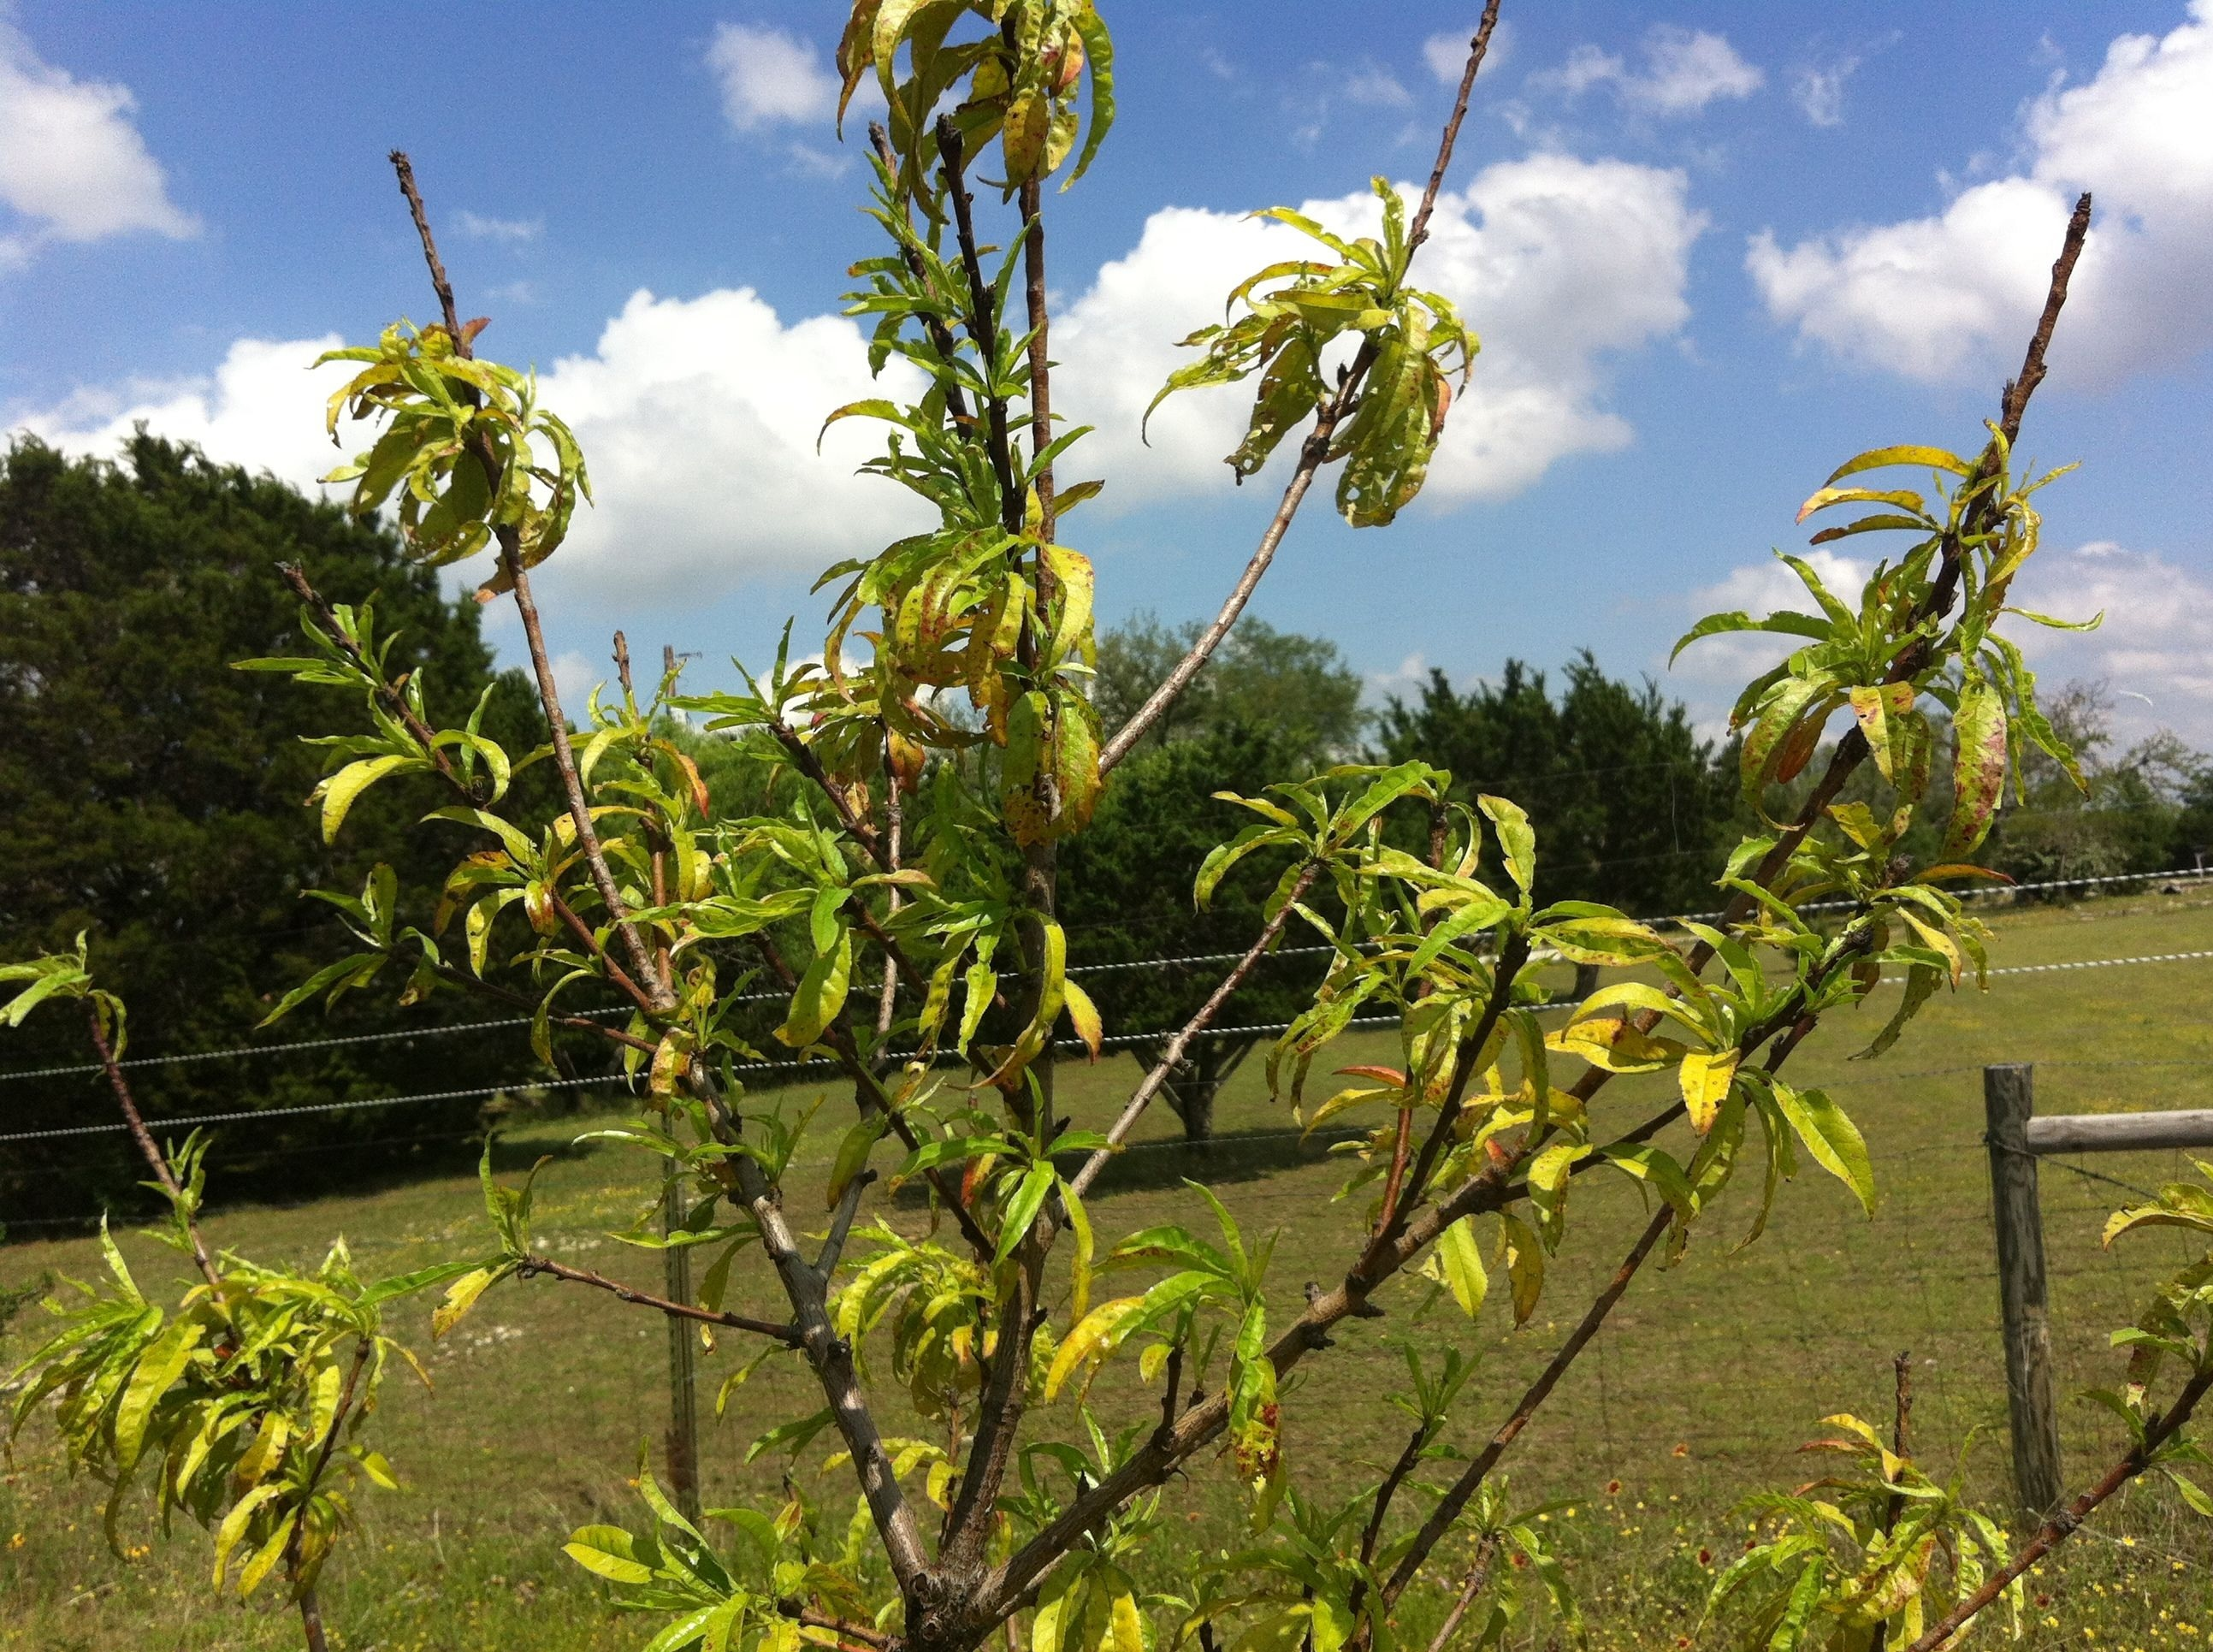 Texas fruit growers blog fruit nut resources you can see that scott has a good mulch layer down to conserve moisture and eliminate weed competition but this tree has a couple of problems going on m4hsunfo